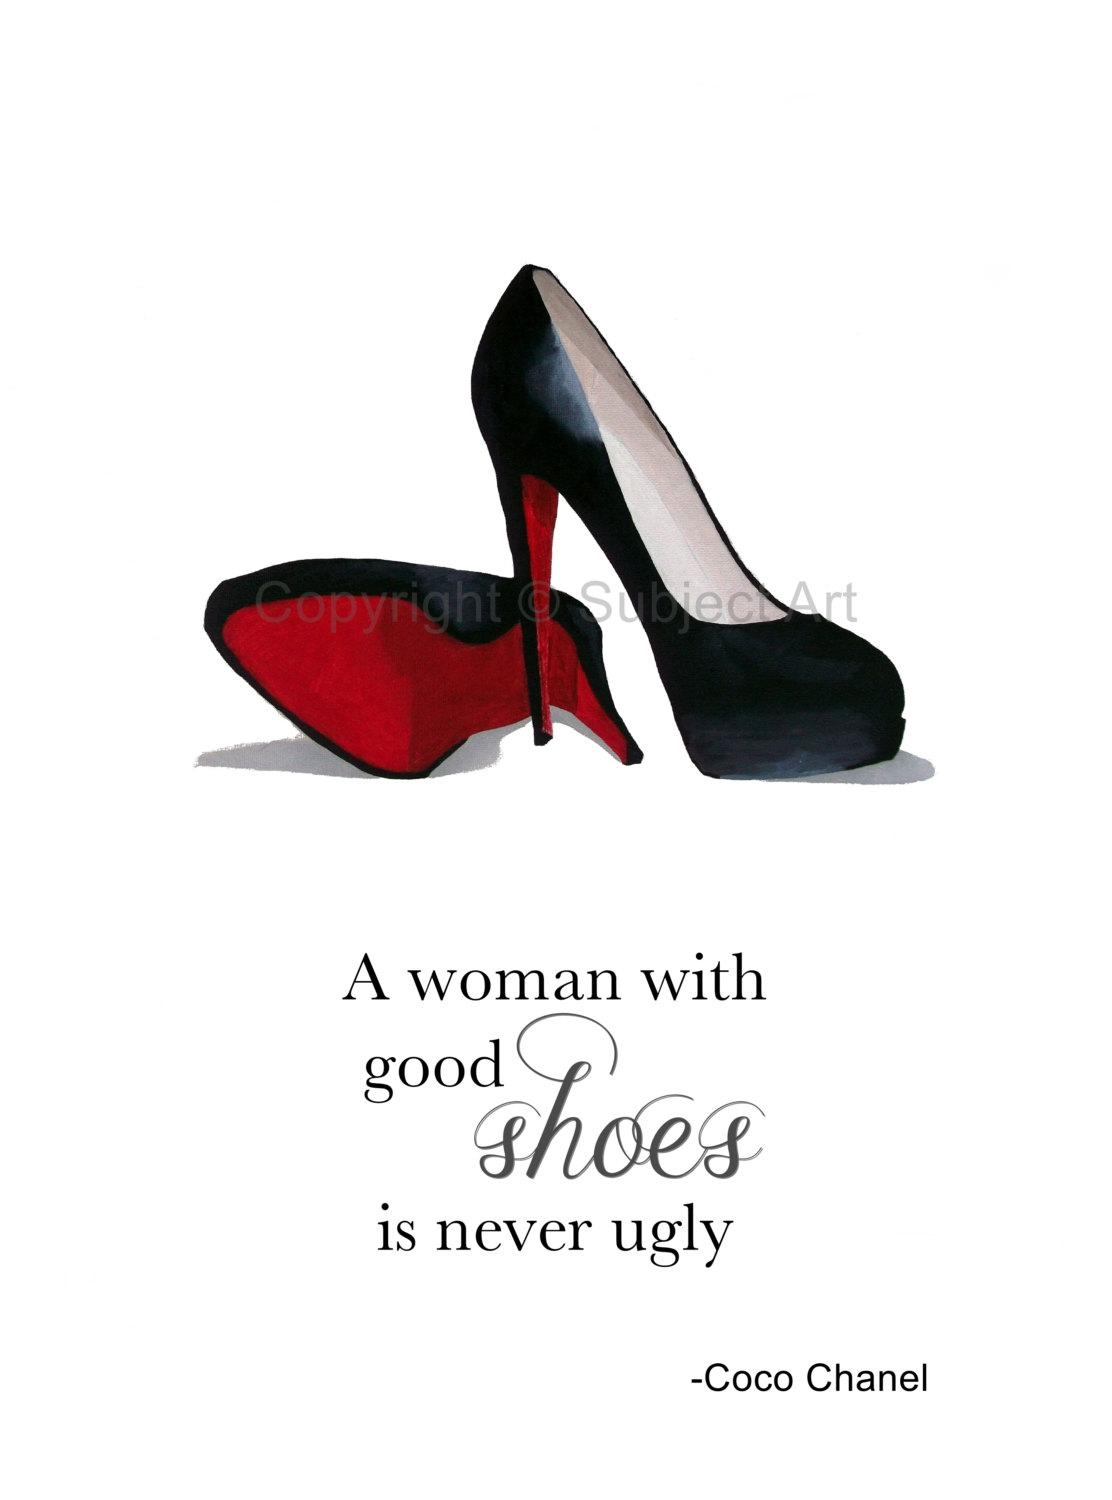 Christian Louboutin Black Shoes Art Print Coco Chanel Quote For Coco Chanel Quotes Framed Wall Art (View 19 of 20)